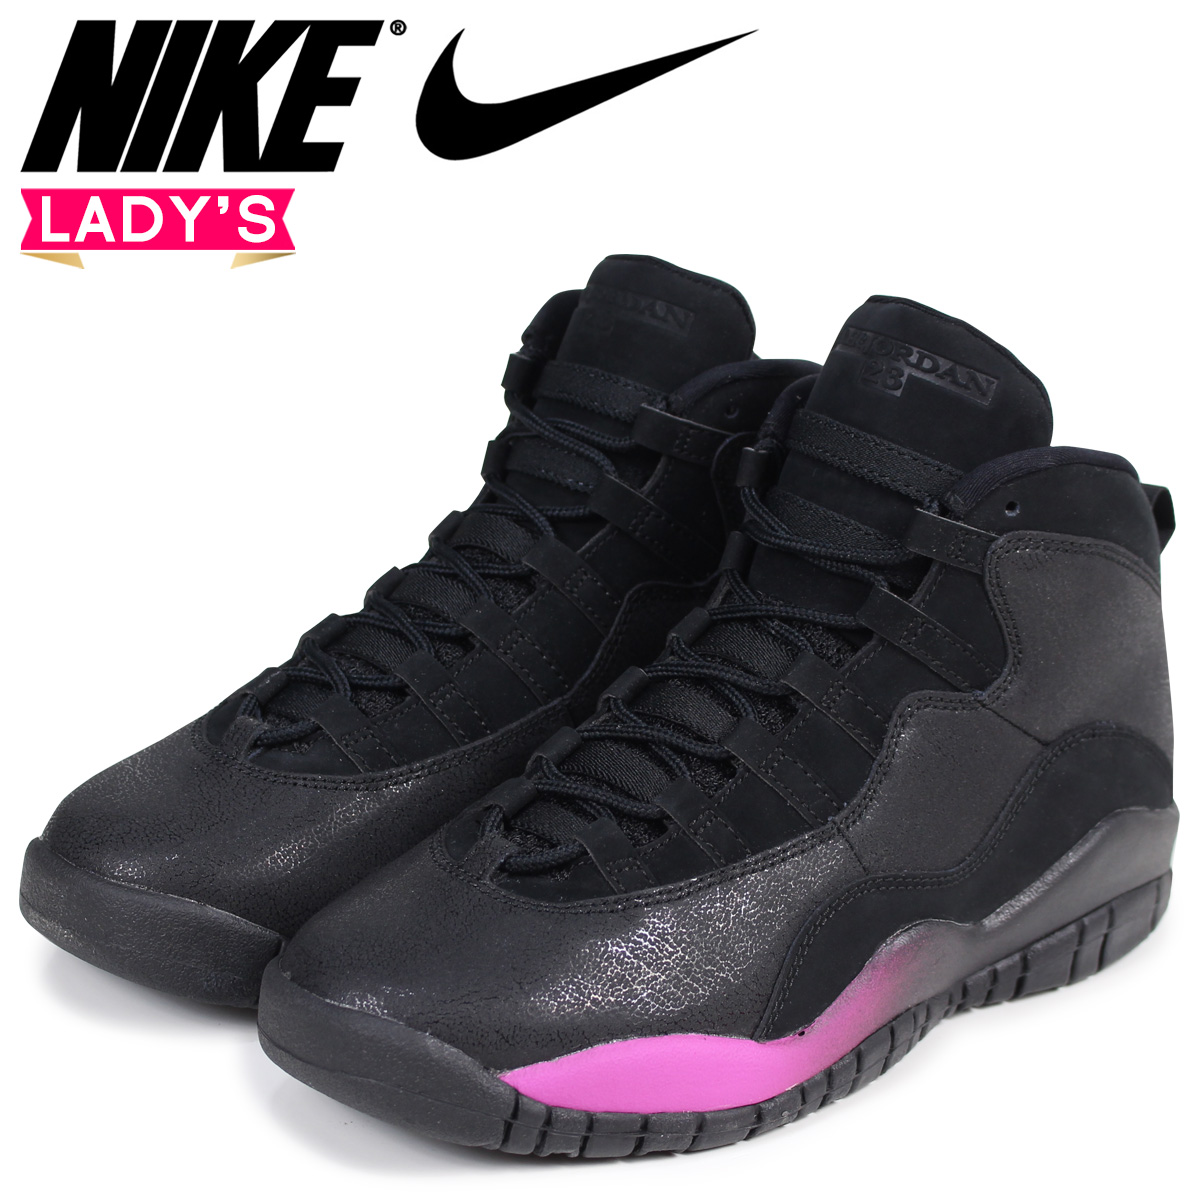 NIKE Nike Air Jordan 10 nostalgic lady's sneakers AIR JORDAN 10 RETRO GG  487,211-017 black black